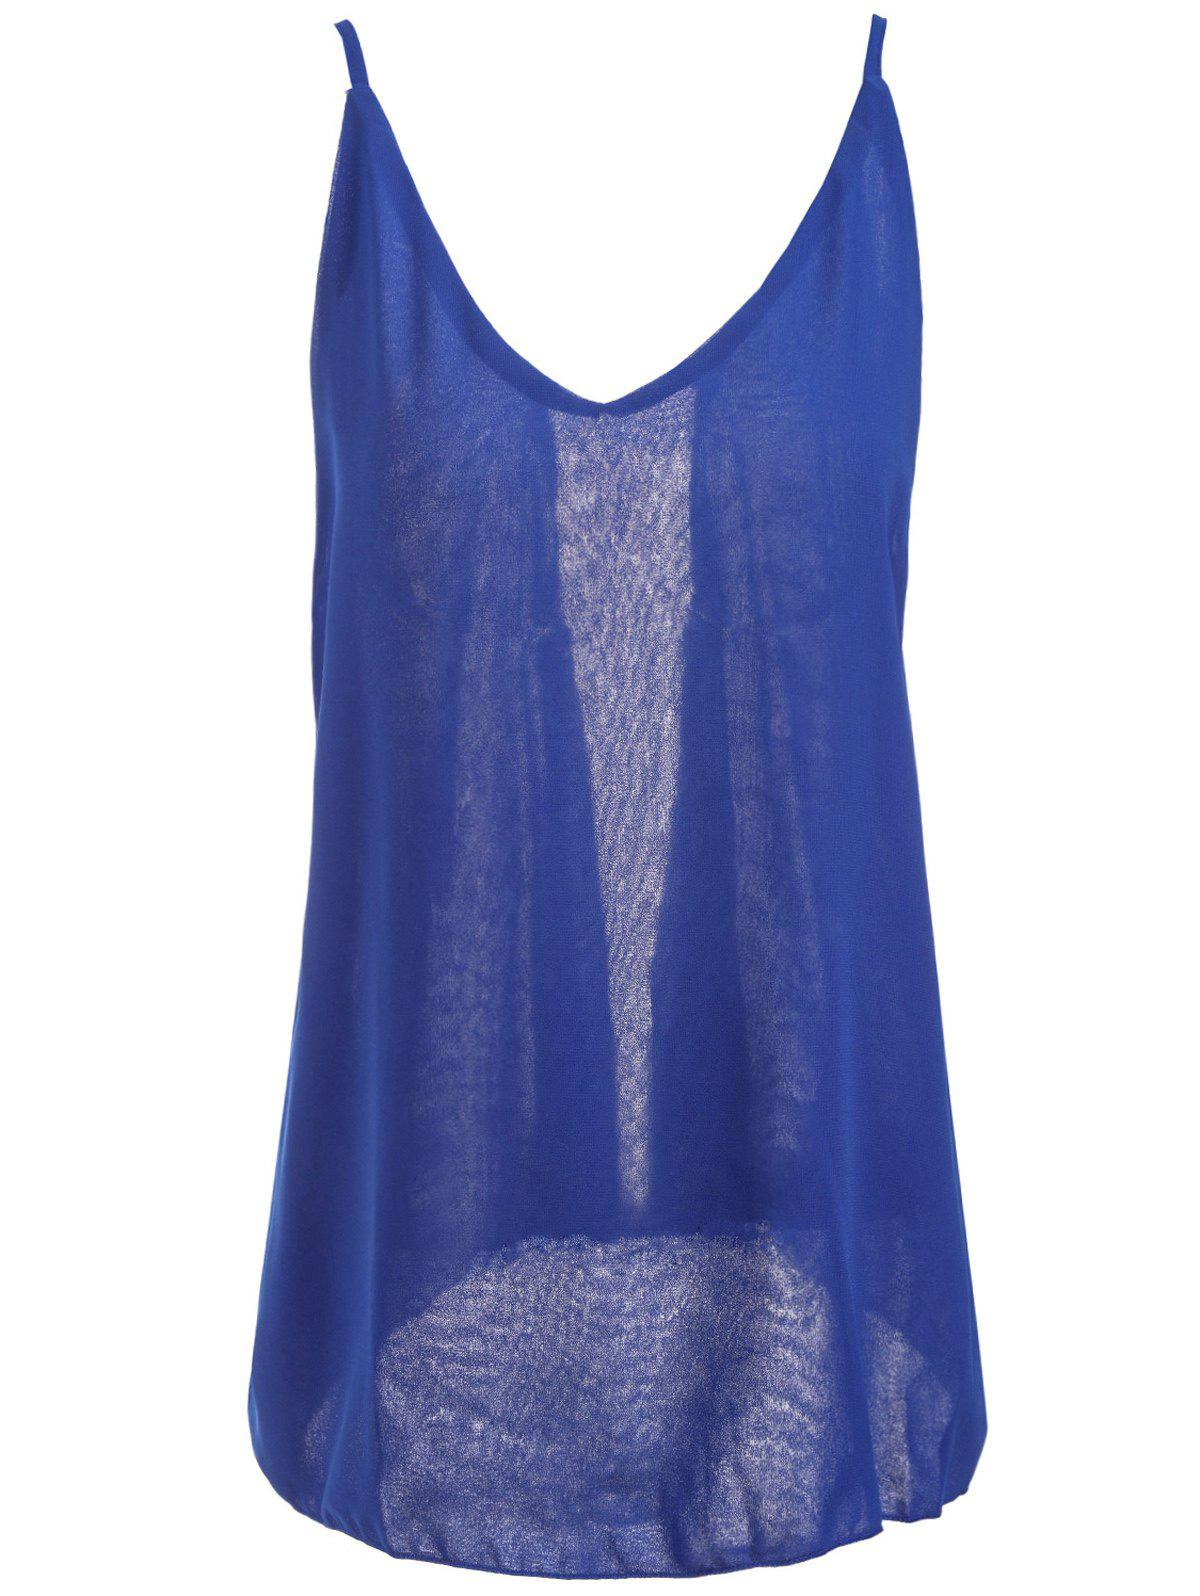 Fashionable Spaghetti Strap Solid Color Chiffon Backless Women's Tank Top - BLUE 2XL